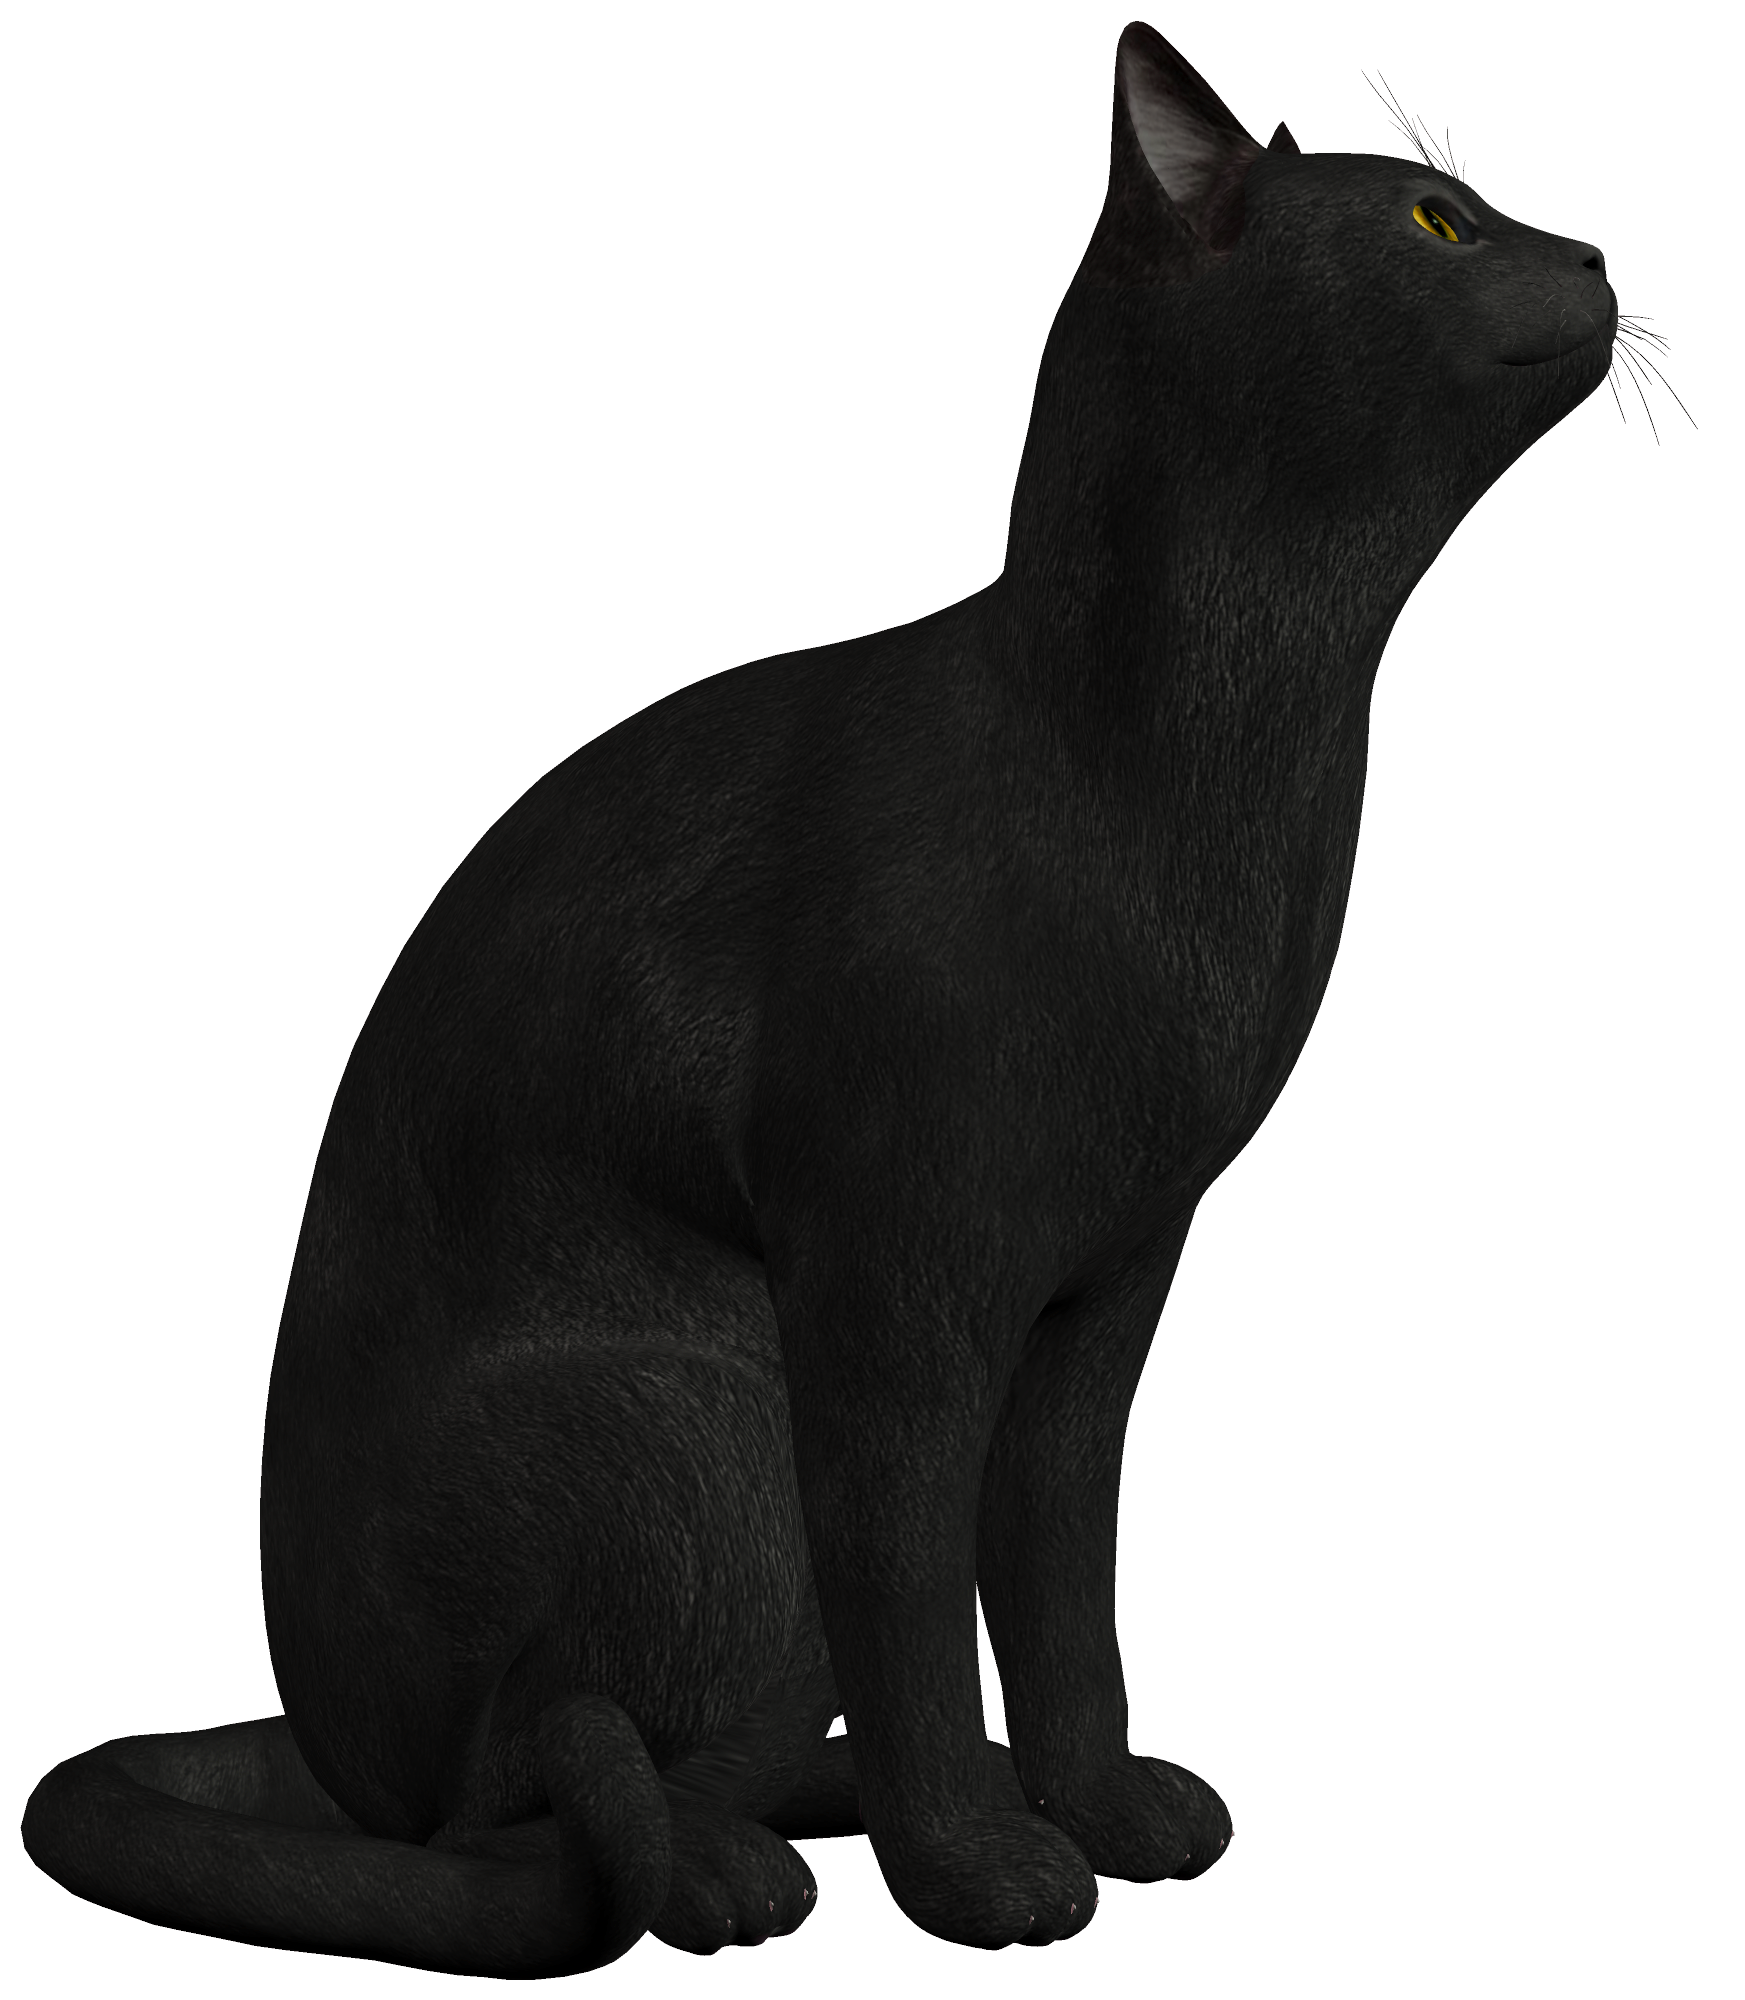 Black cat png. Clipart best web